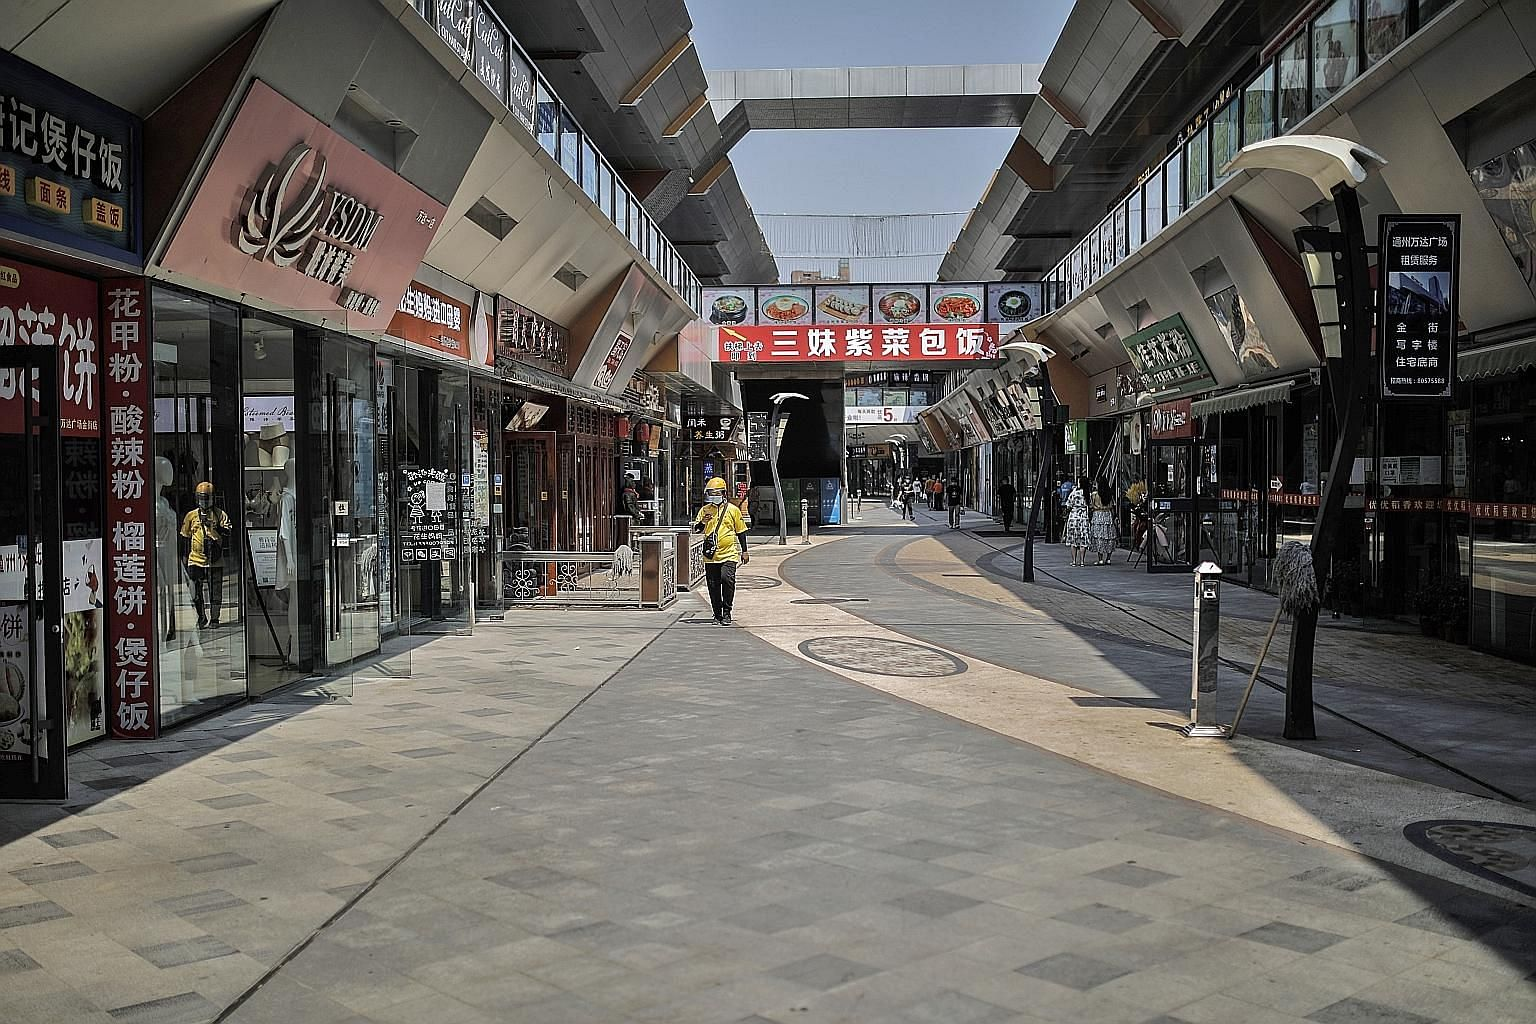 The latest coronavirus outbreak in Beijing, with nearly all of the 227 cases linked to the Xinfadi wholesale food market, has dealt yet another blow to the food and beverage industry, which was crawling out of a months-long shutdown and gradually she